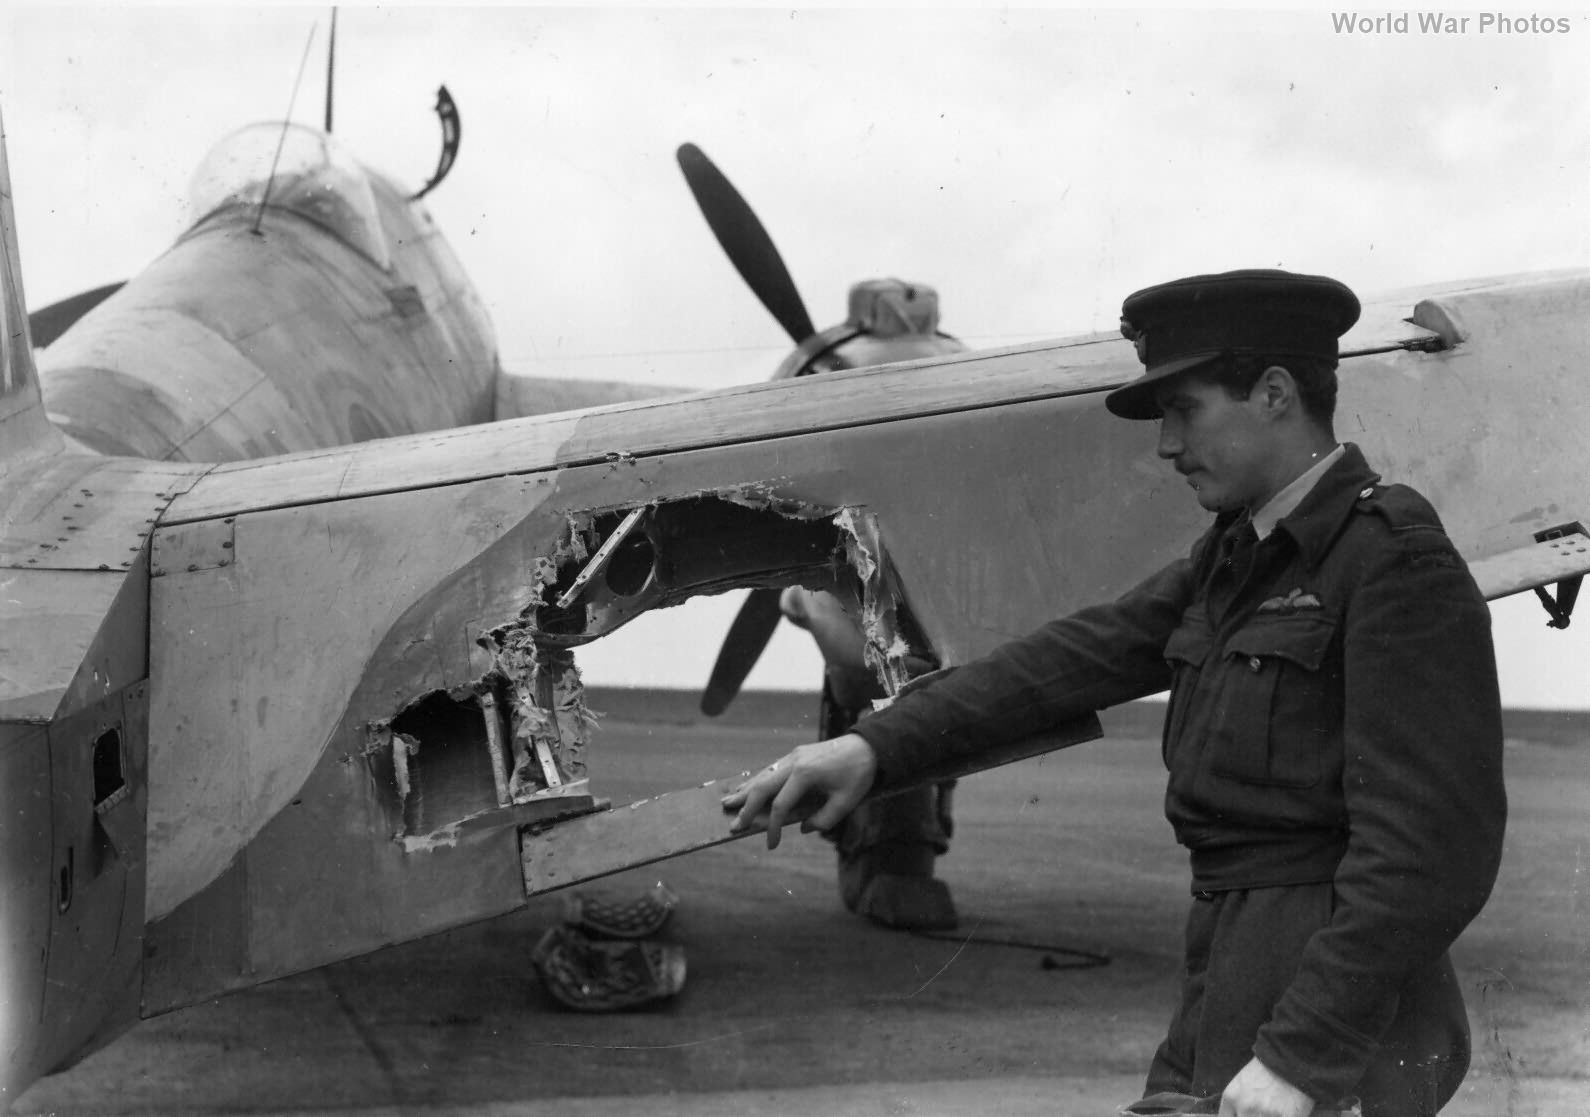 Beaufighter tail damaged by Flak